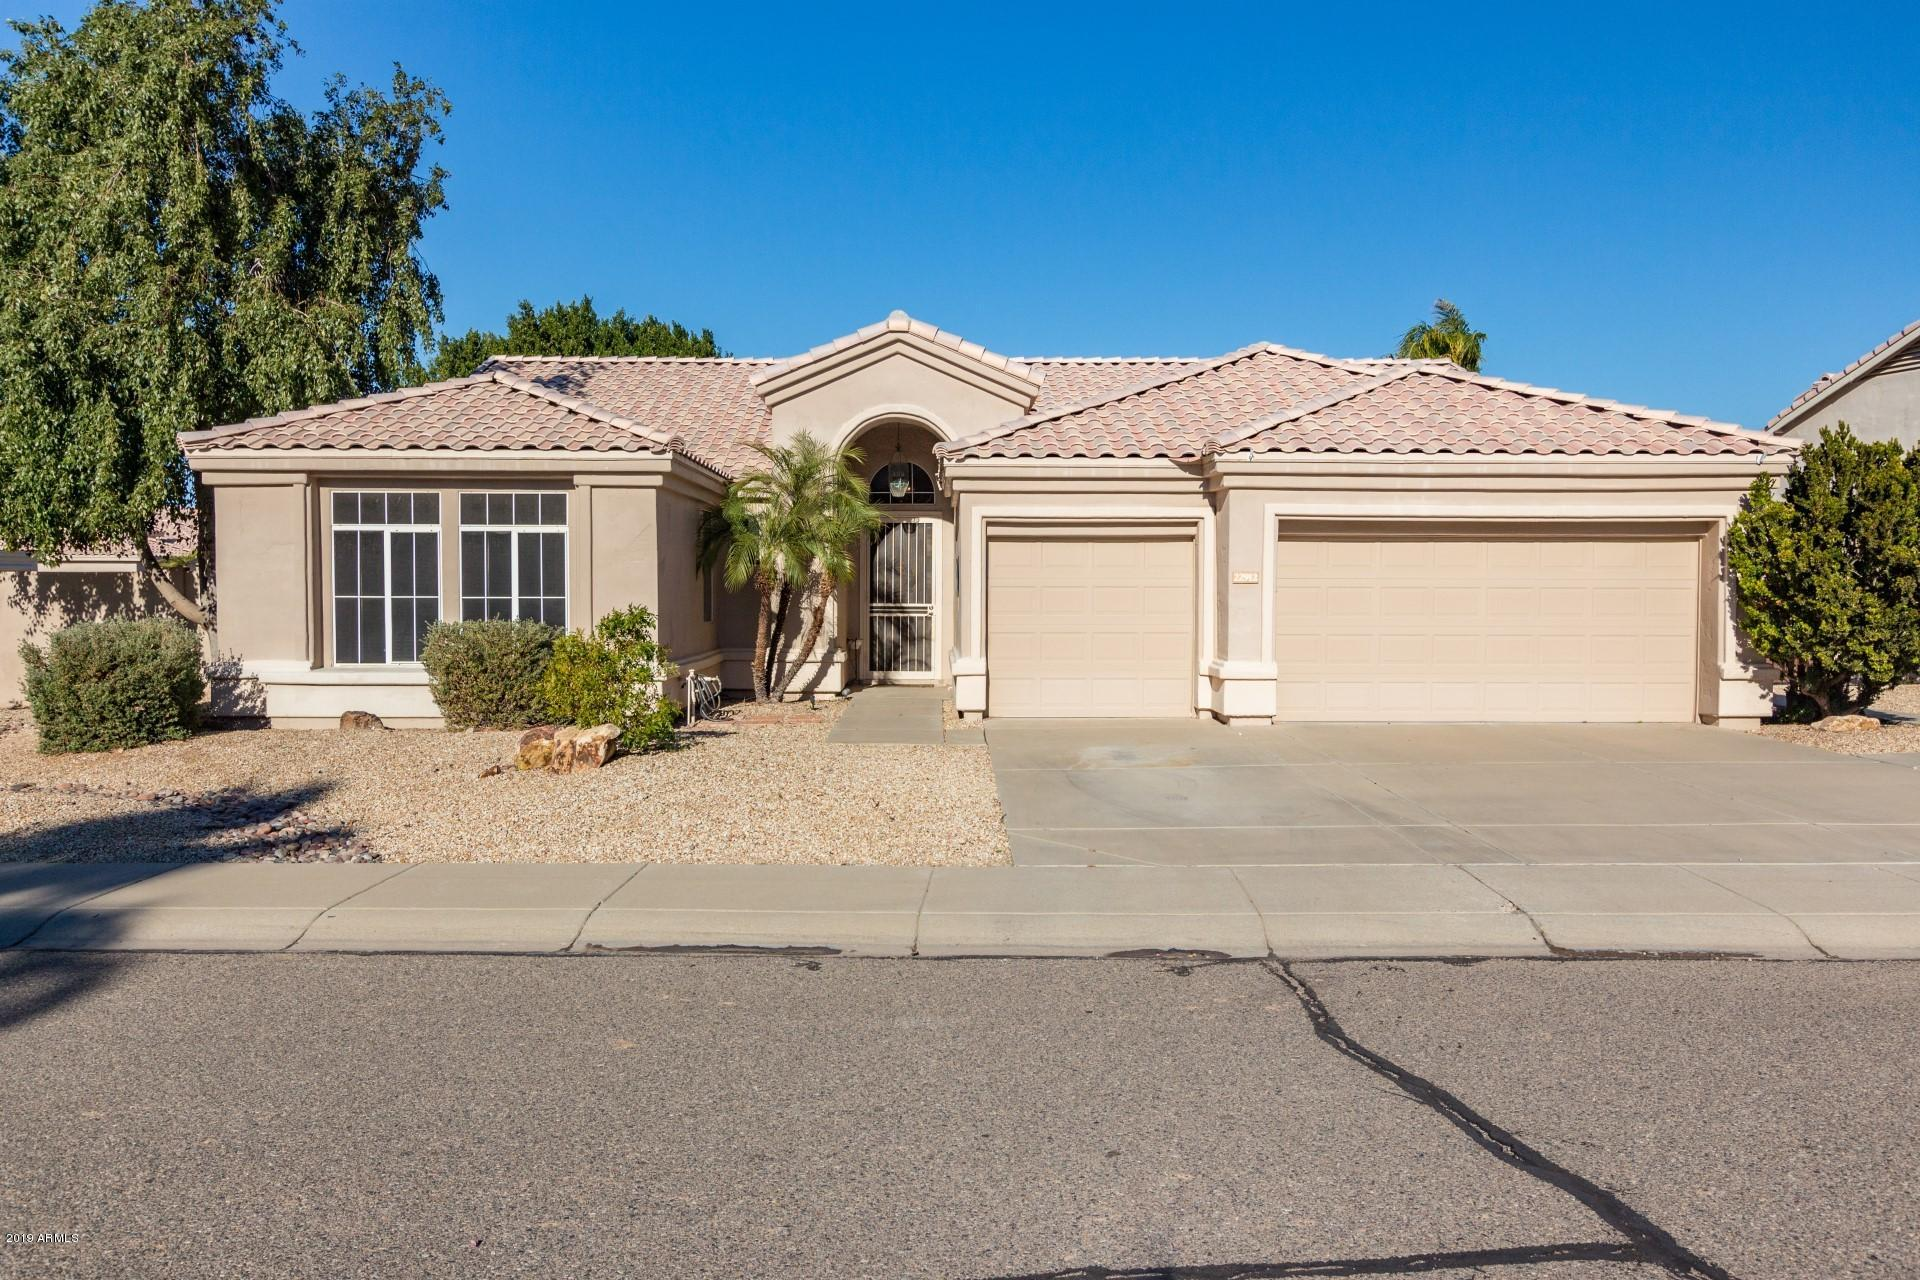 Photo of 22912 N 74TH Avenue, Glendale, AZ 85310